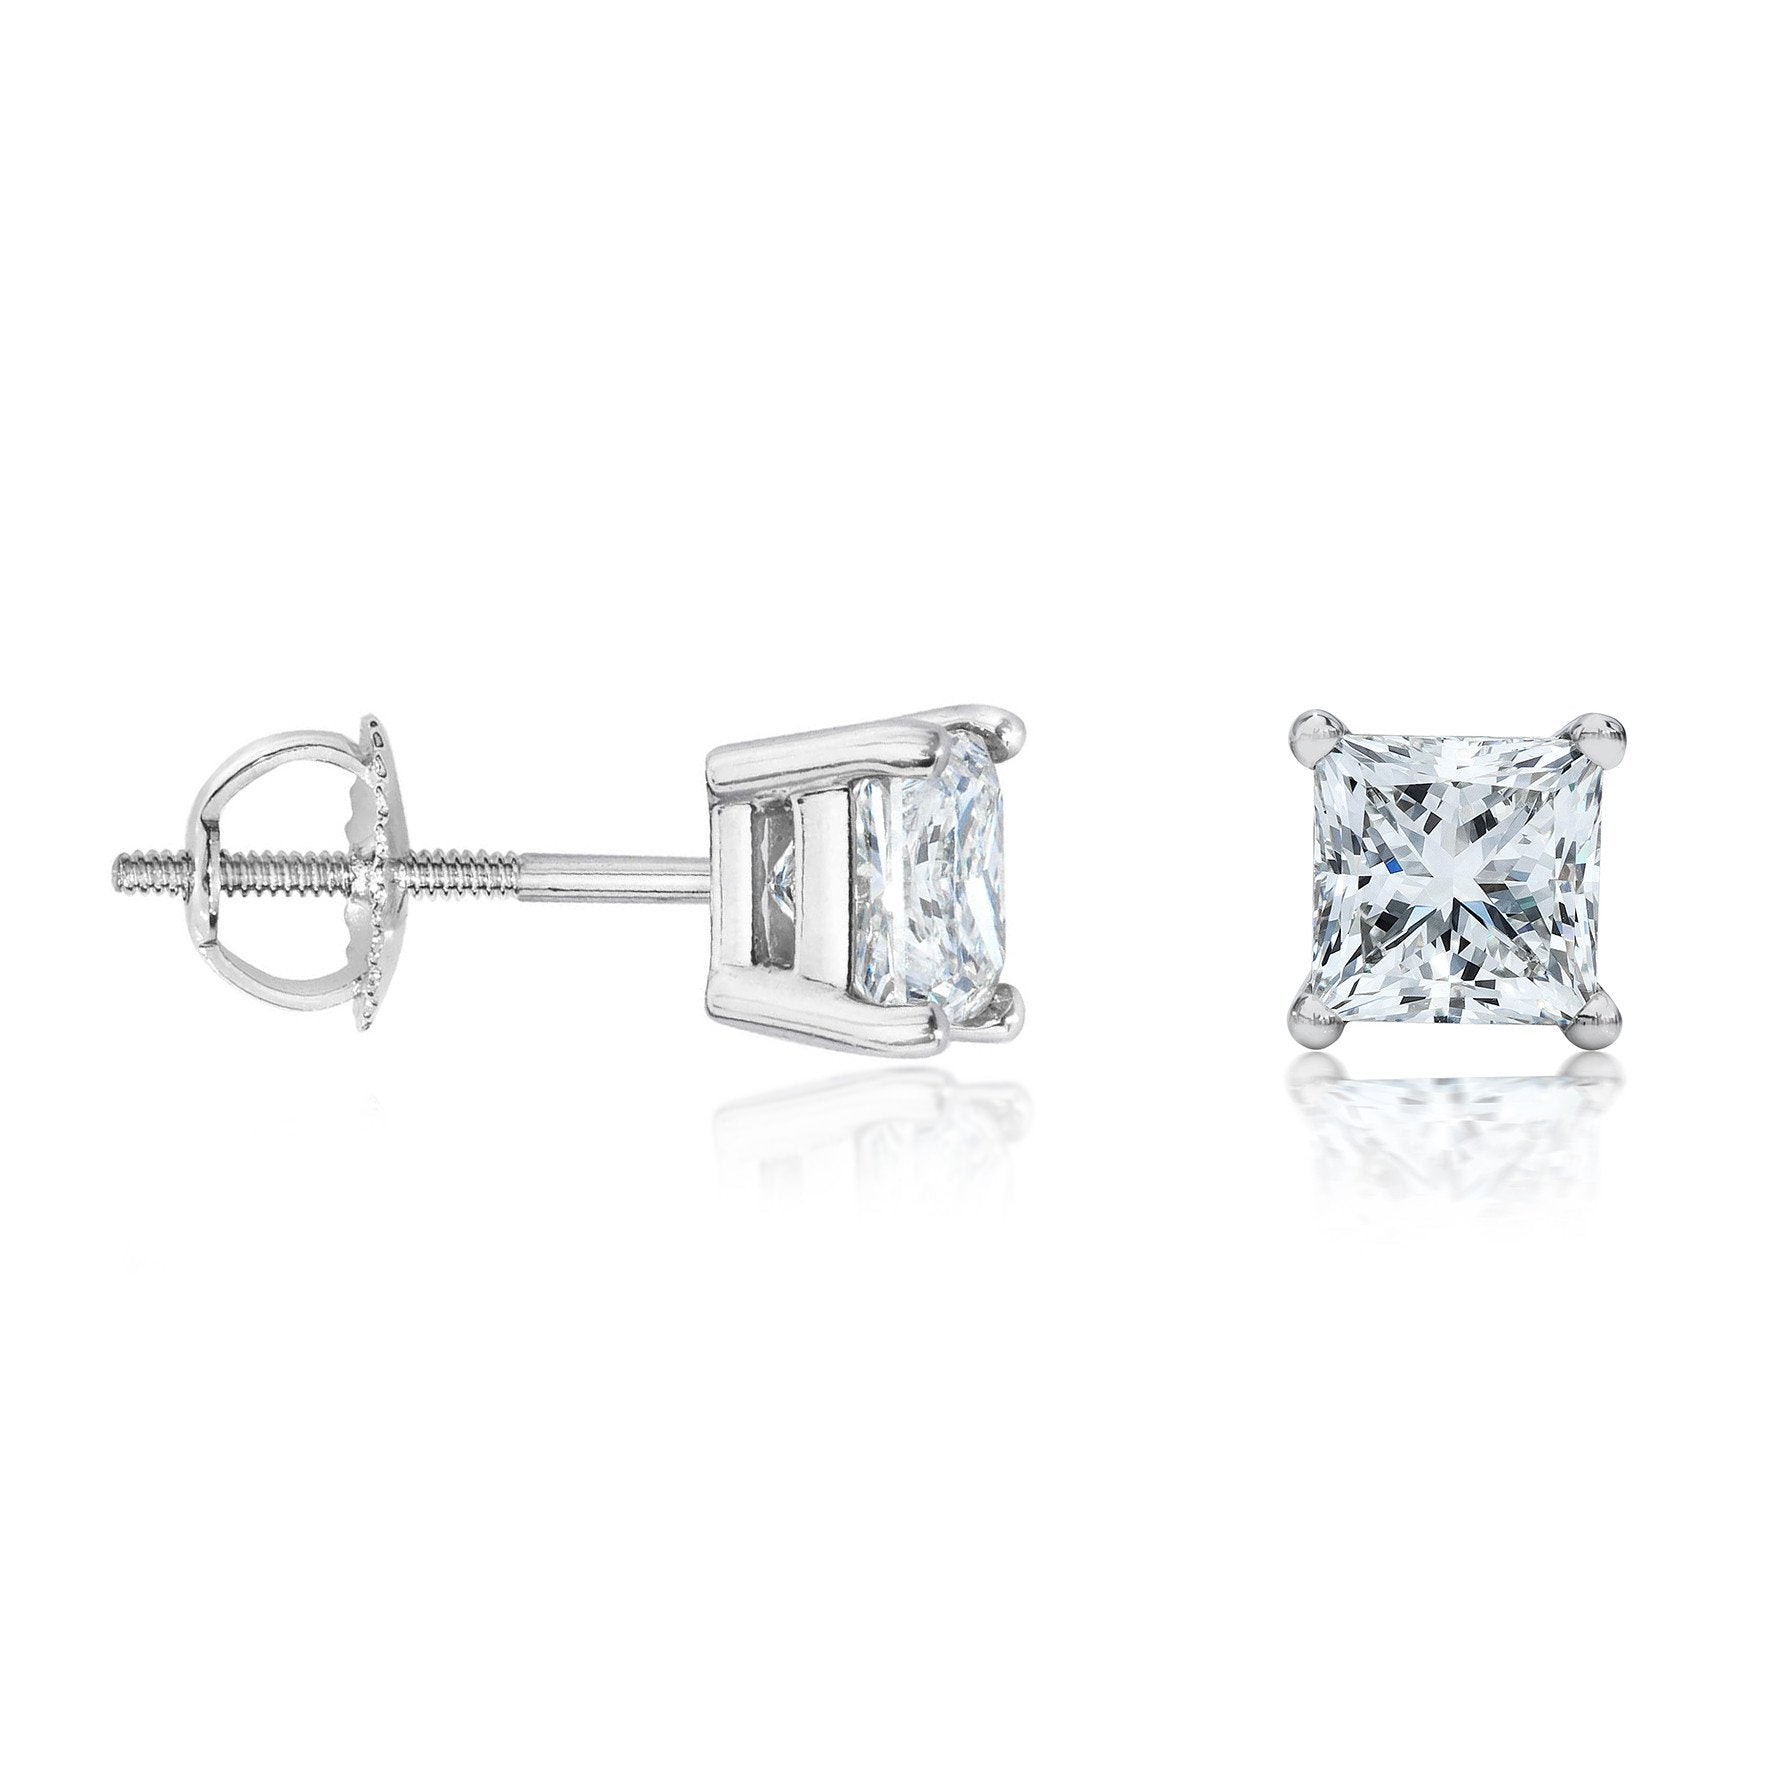 princess earring dangle diamond collection earrings cut stud